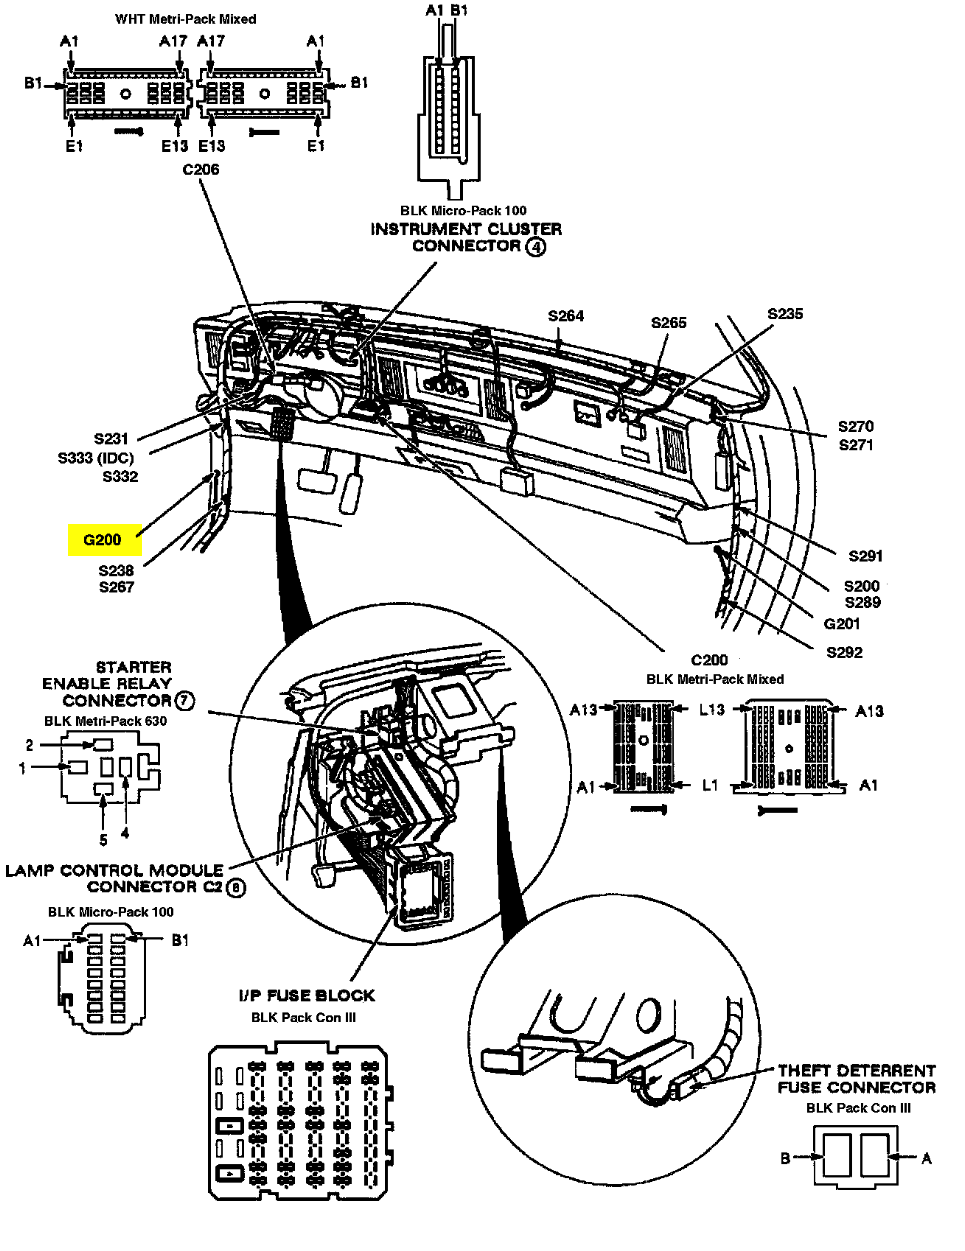 Where Is The Ground Connection For The Fuel Pump Harness On A 1994 Buick Park Ave  I Believe It